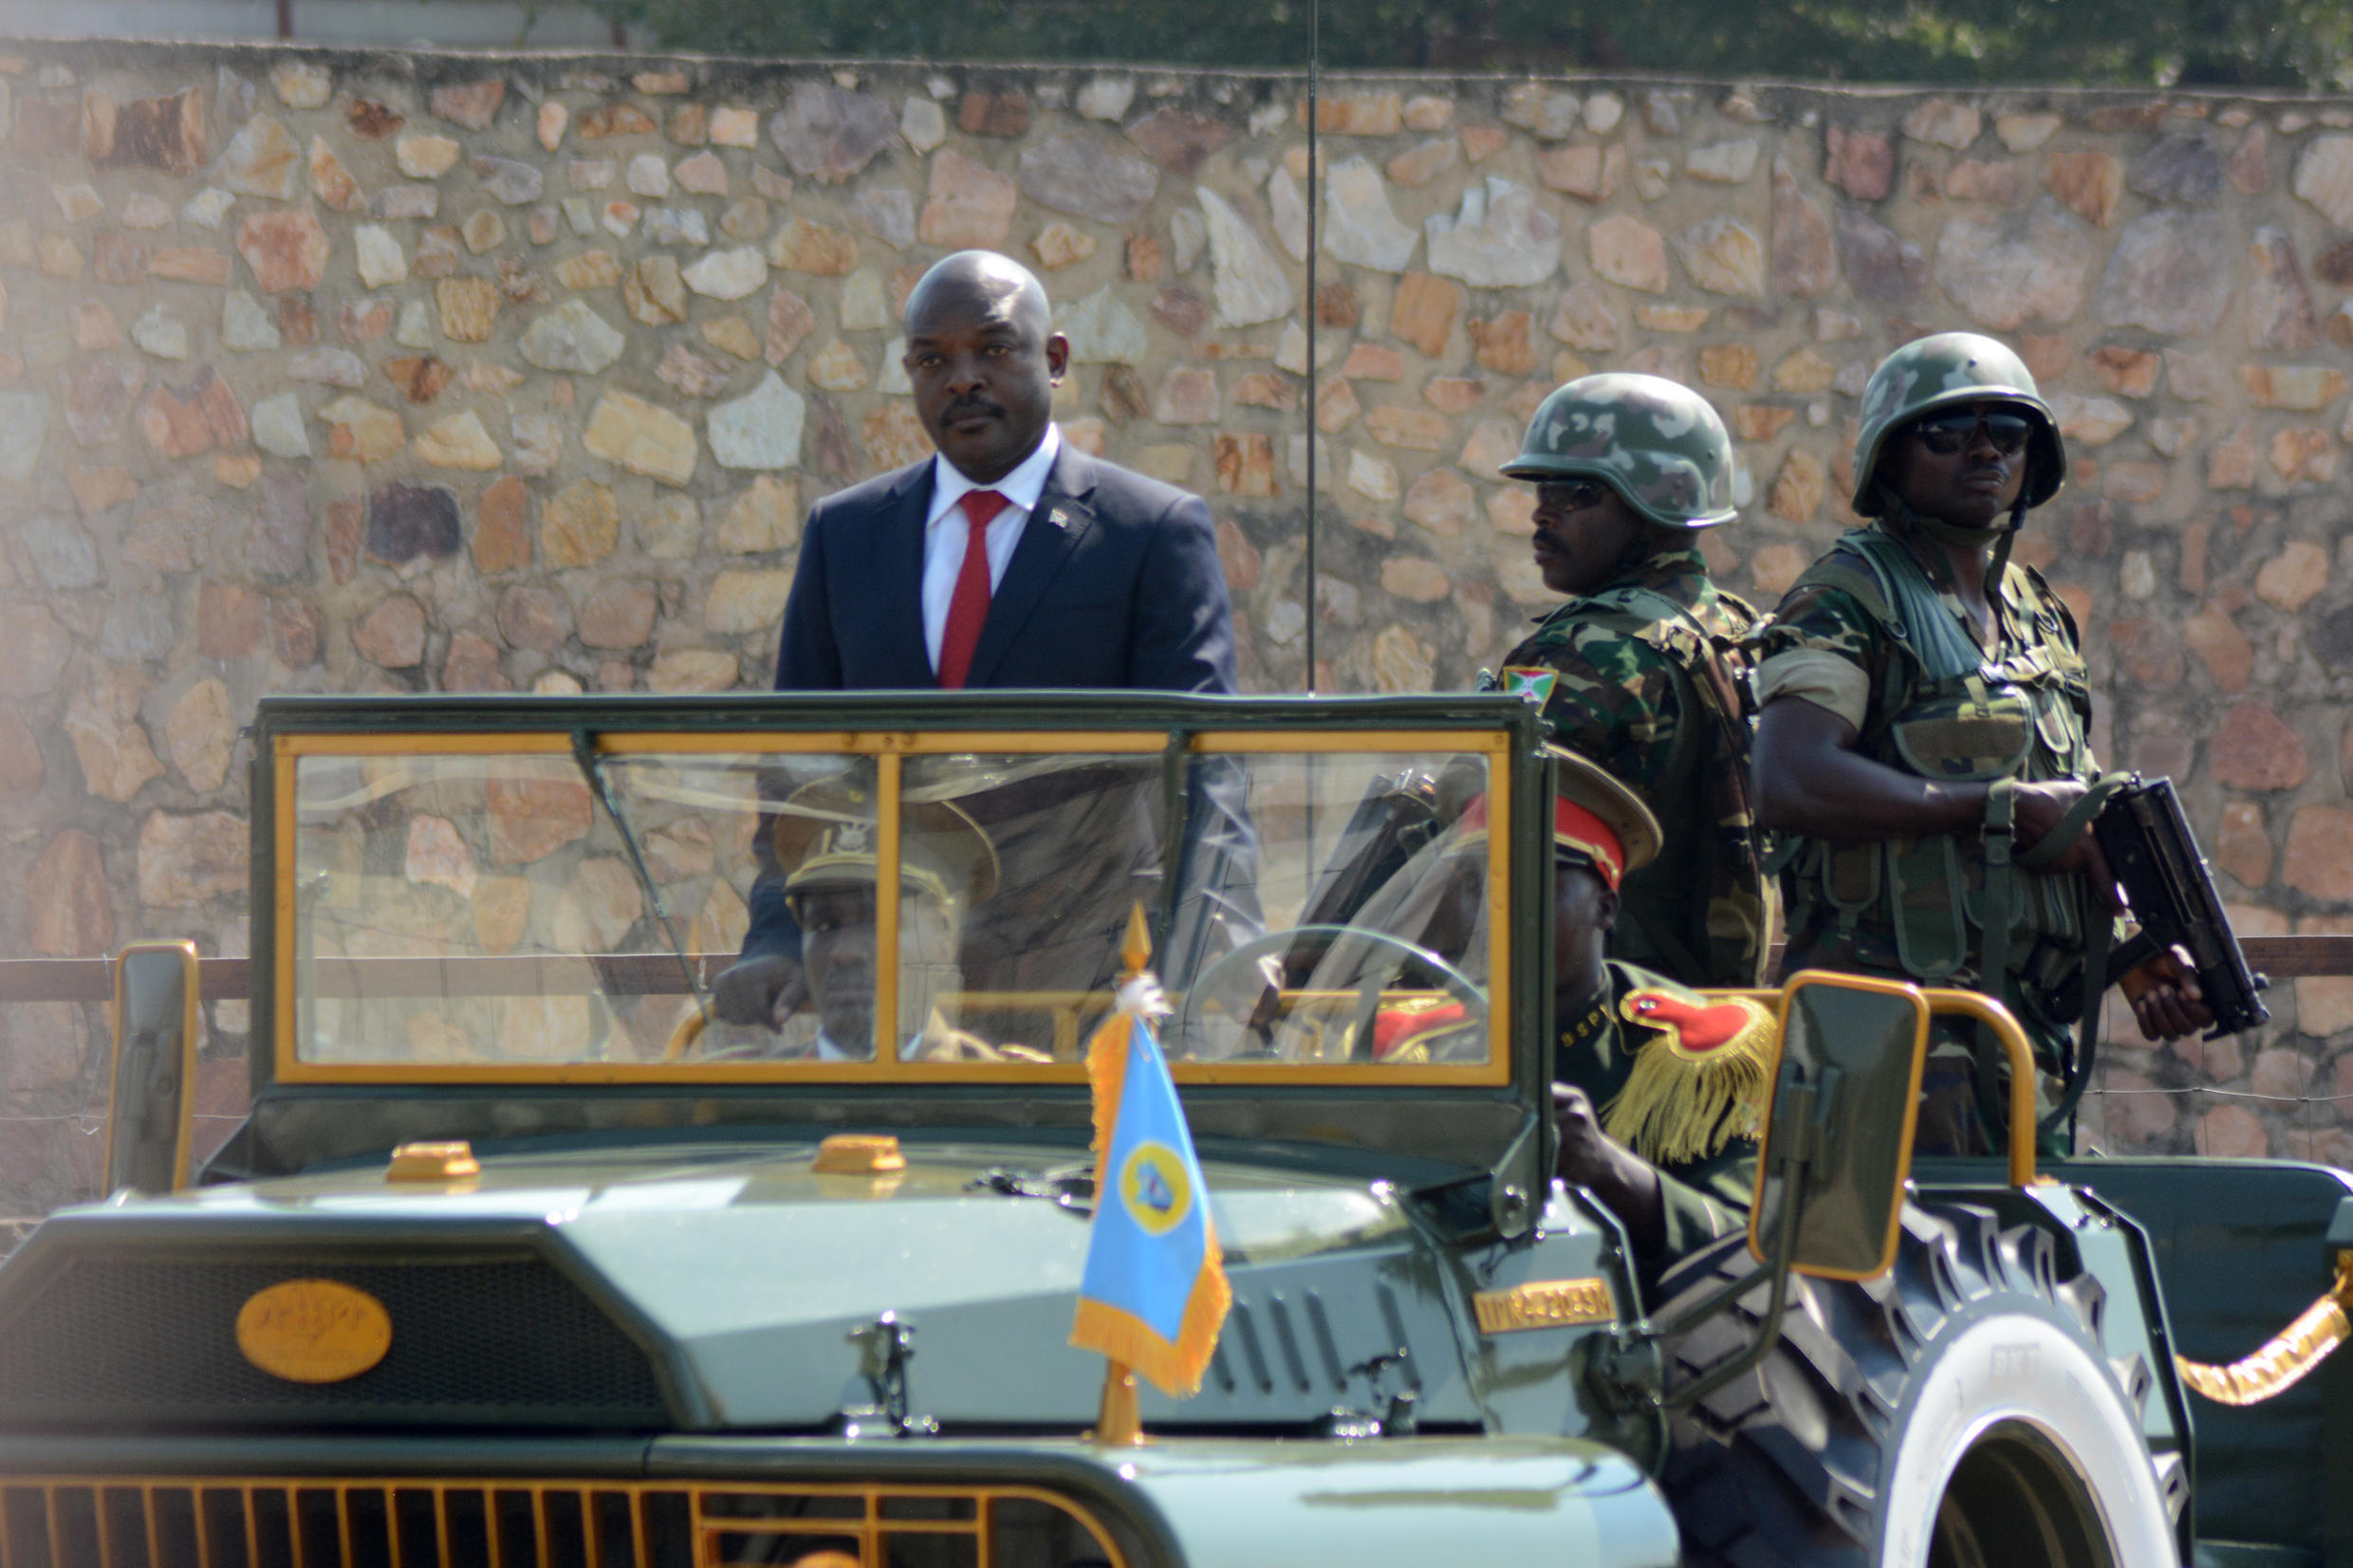 President Nkurunziza stands in a military vehicle during Burundi's Independence Day celebrations in Bujumbura, 1 July 2016.